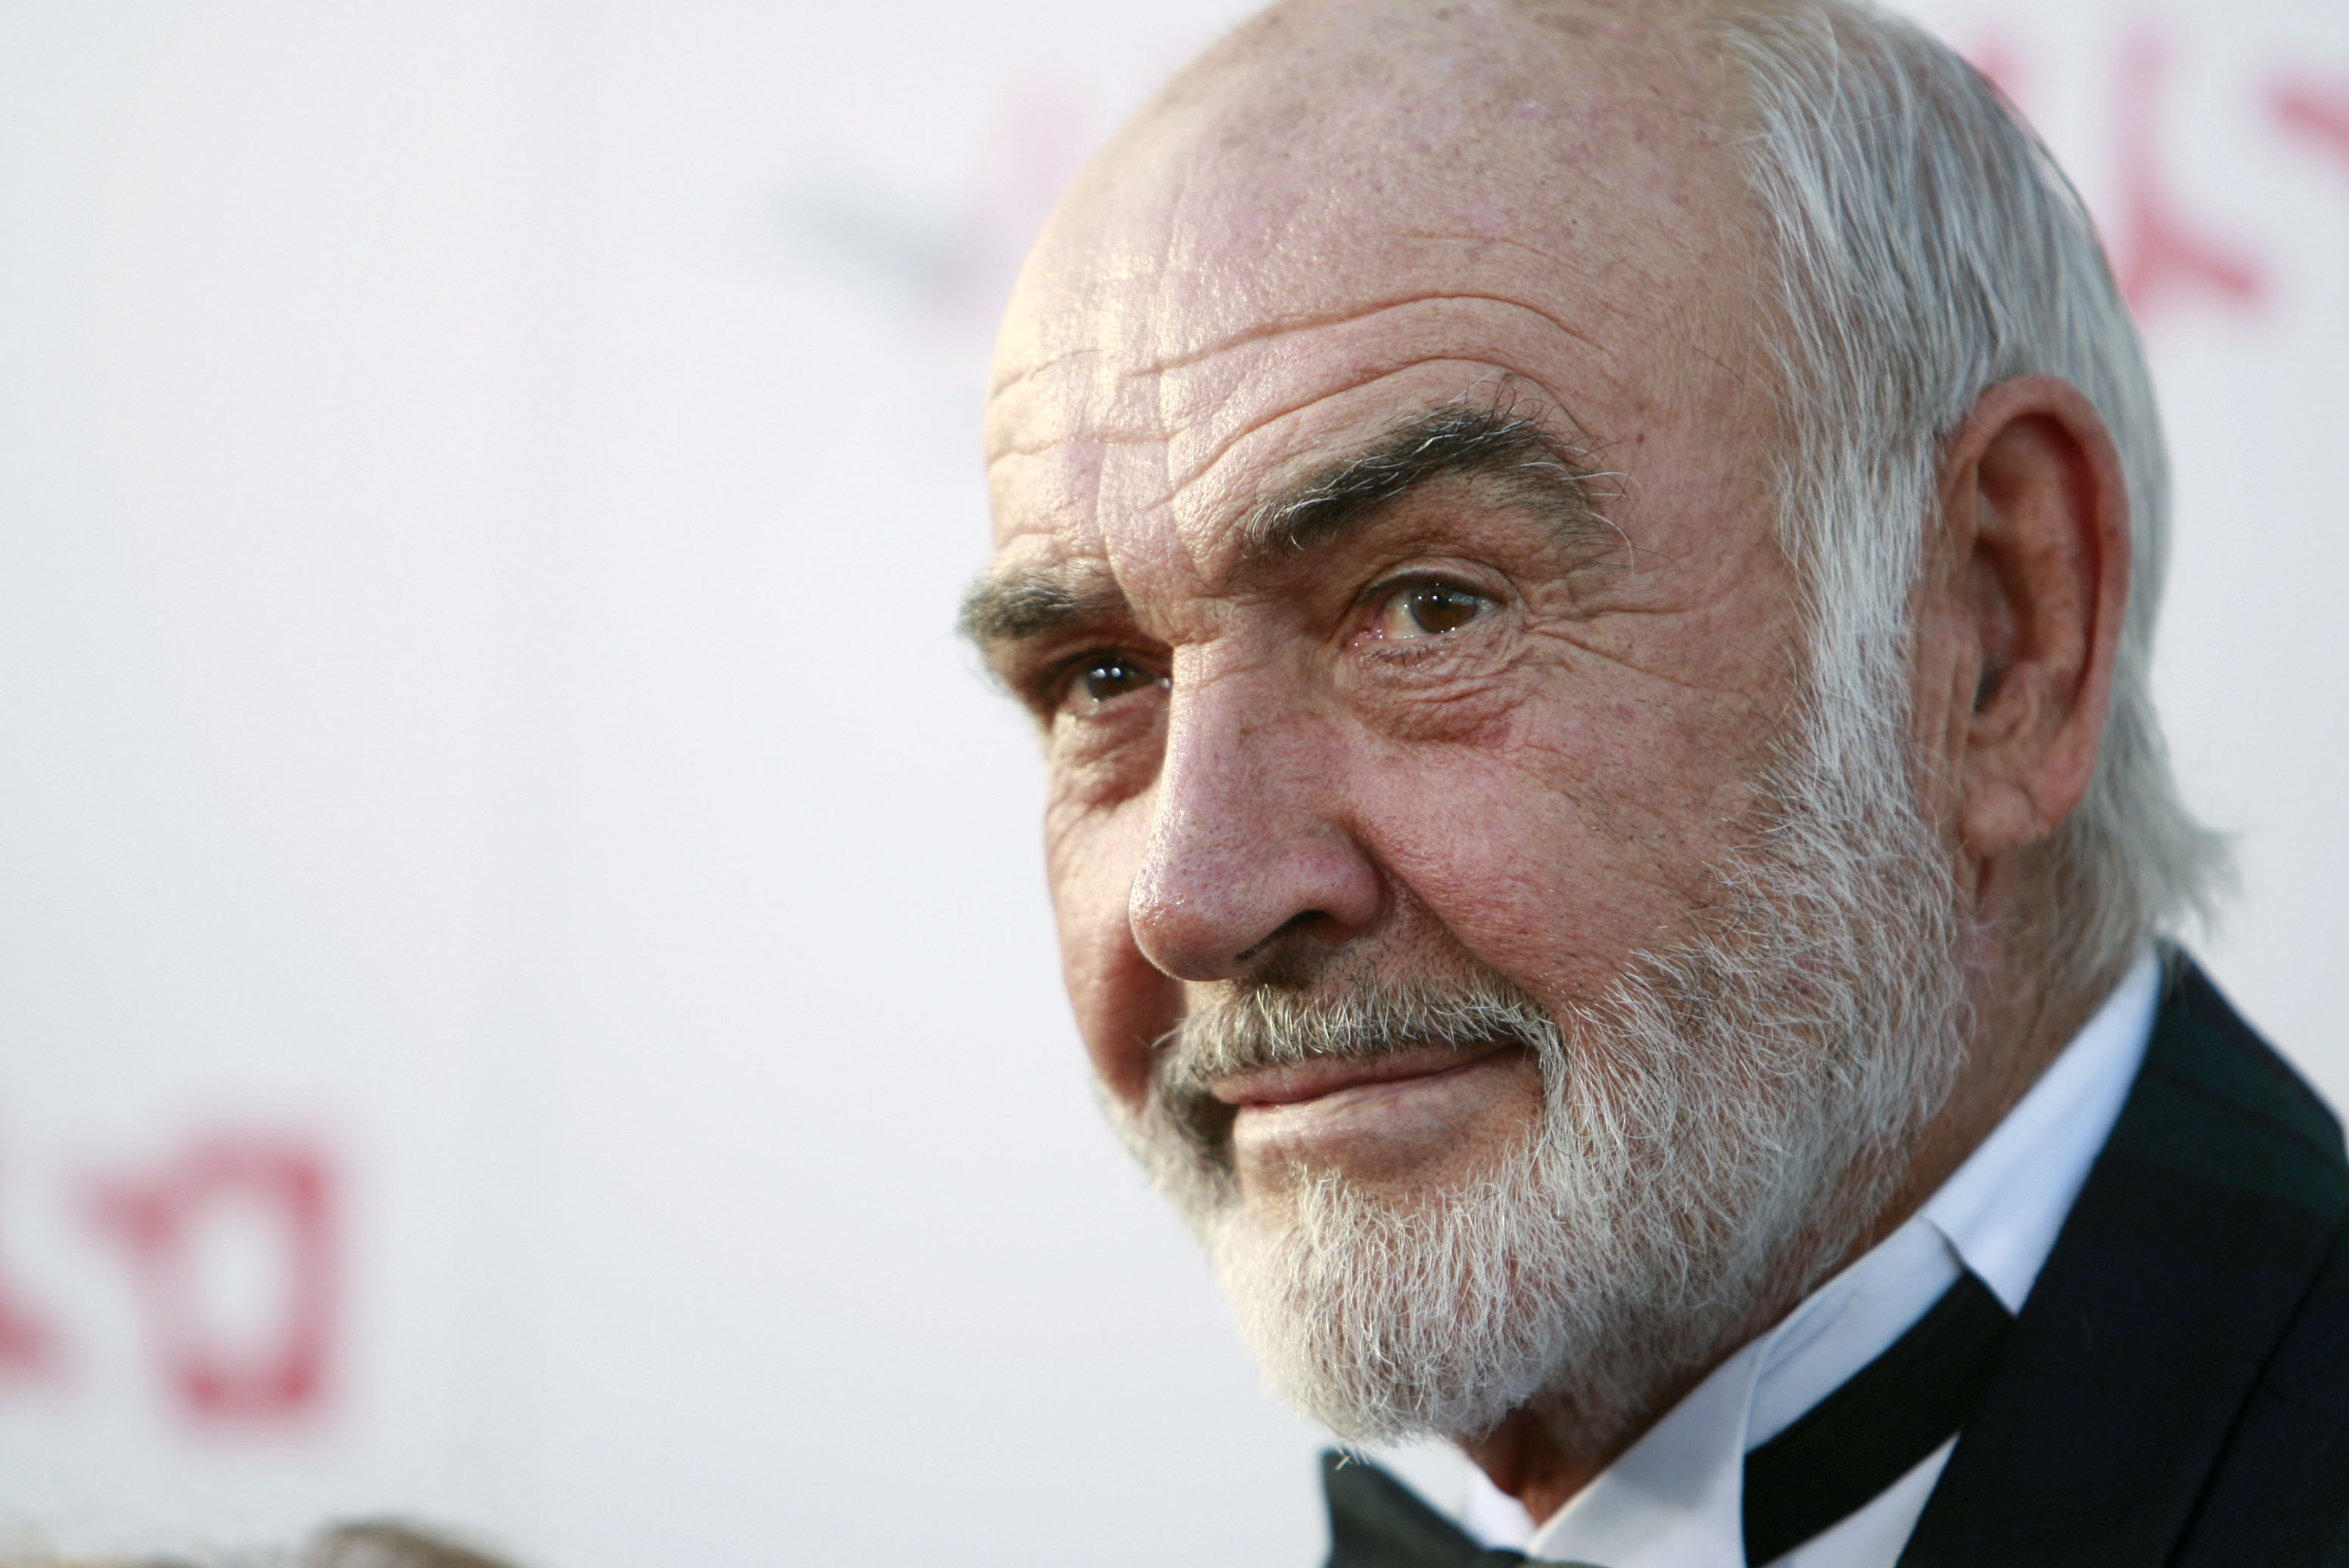 sean connery is irish